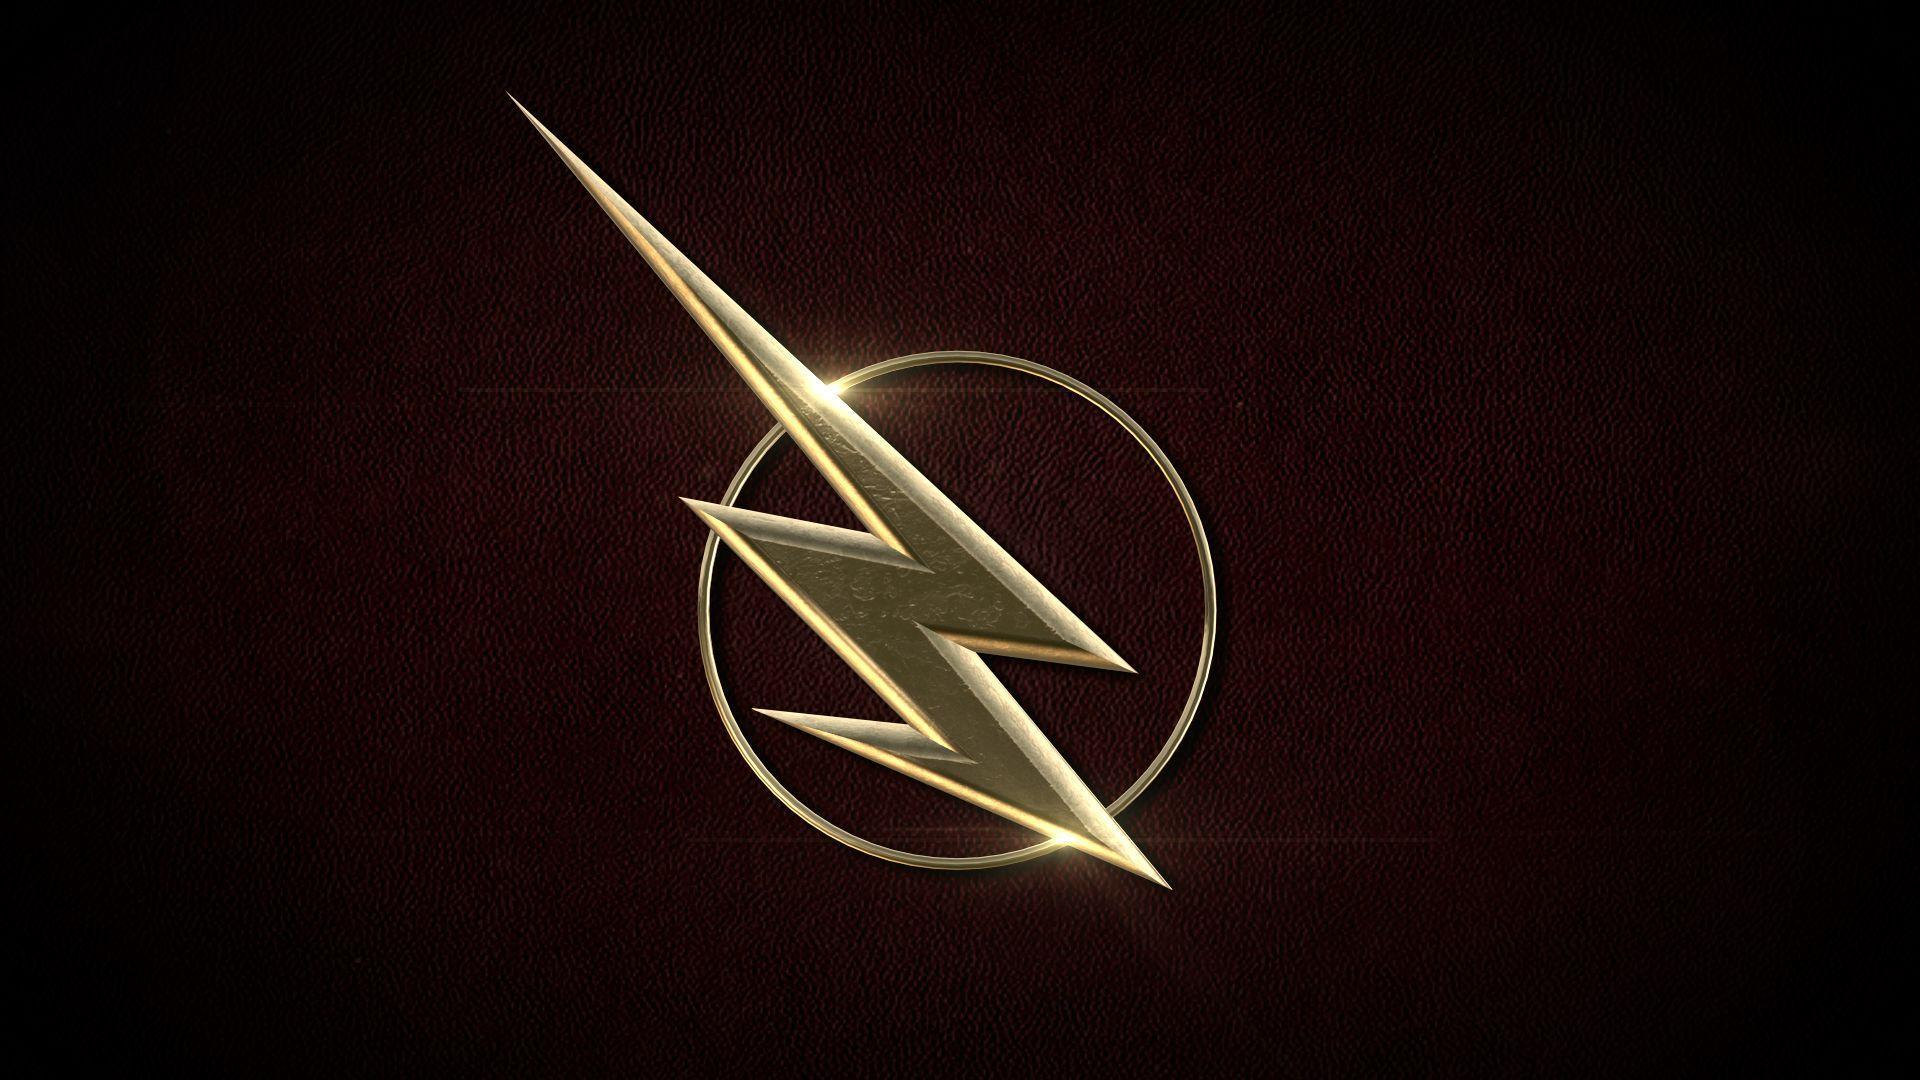 zoom and flash lego wallpaper - photo #12